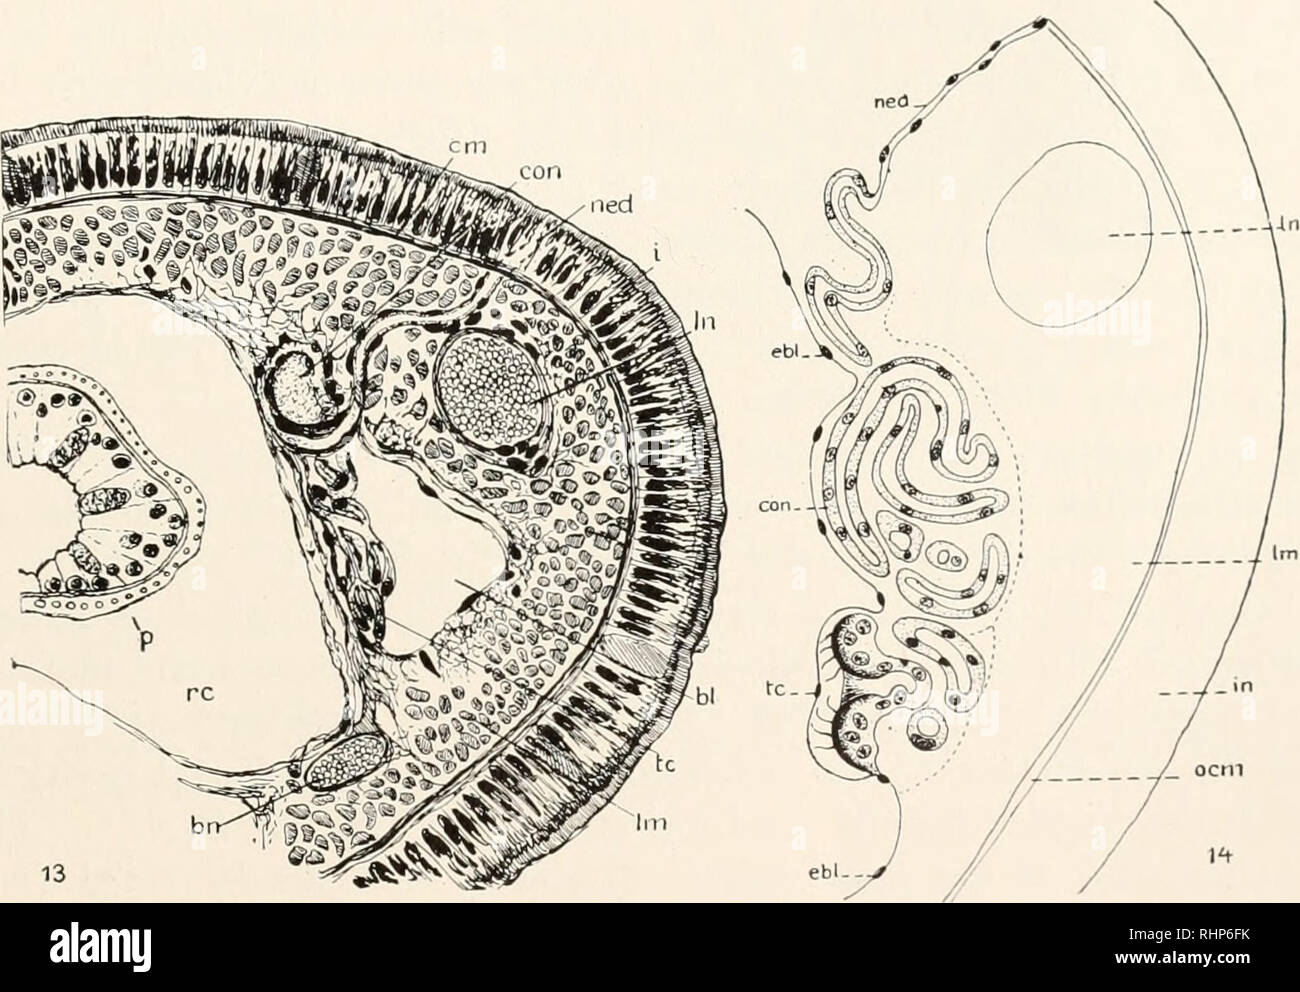 . The Biological bulletin. Biology; Zoology; Biology; Marine Biology. TYPES OF NEPHRIDIA IN NEMERTEANS 211 dorsolateral borders of the cephalic lacunae not far anterior to the mouth. The convoluted tubule of this nephriclium is greatly elongated anteroposteriorly, with the slender efferent duct at its posterior end. Anterior to the midgut the nephritlia are widely scattered, increasing in abundance in the anterior portion of the gonad region and becoming less numerous beyond the end of the proboscis sheath. At least a hundred pairs are found in an individual of moderate size. In the mounted se - Stock Image